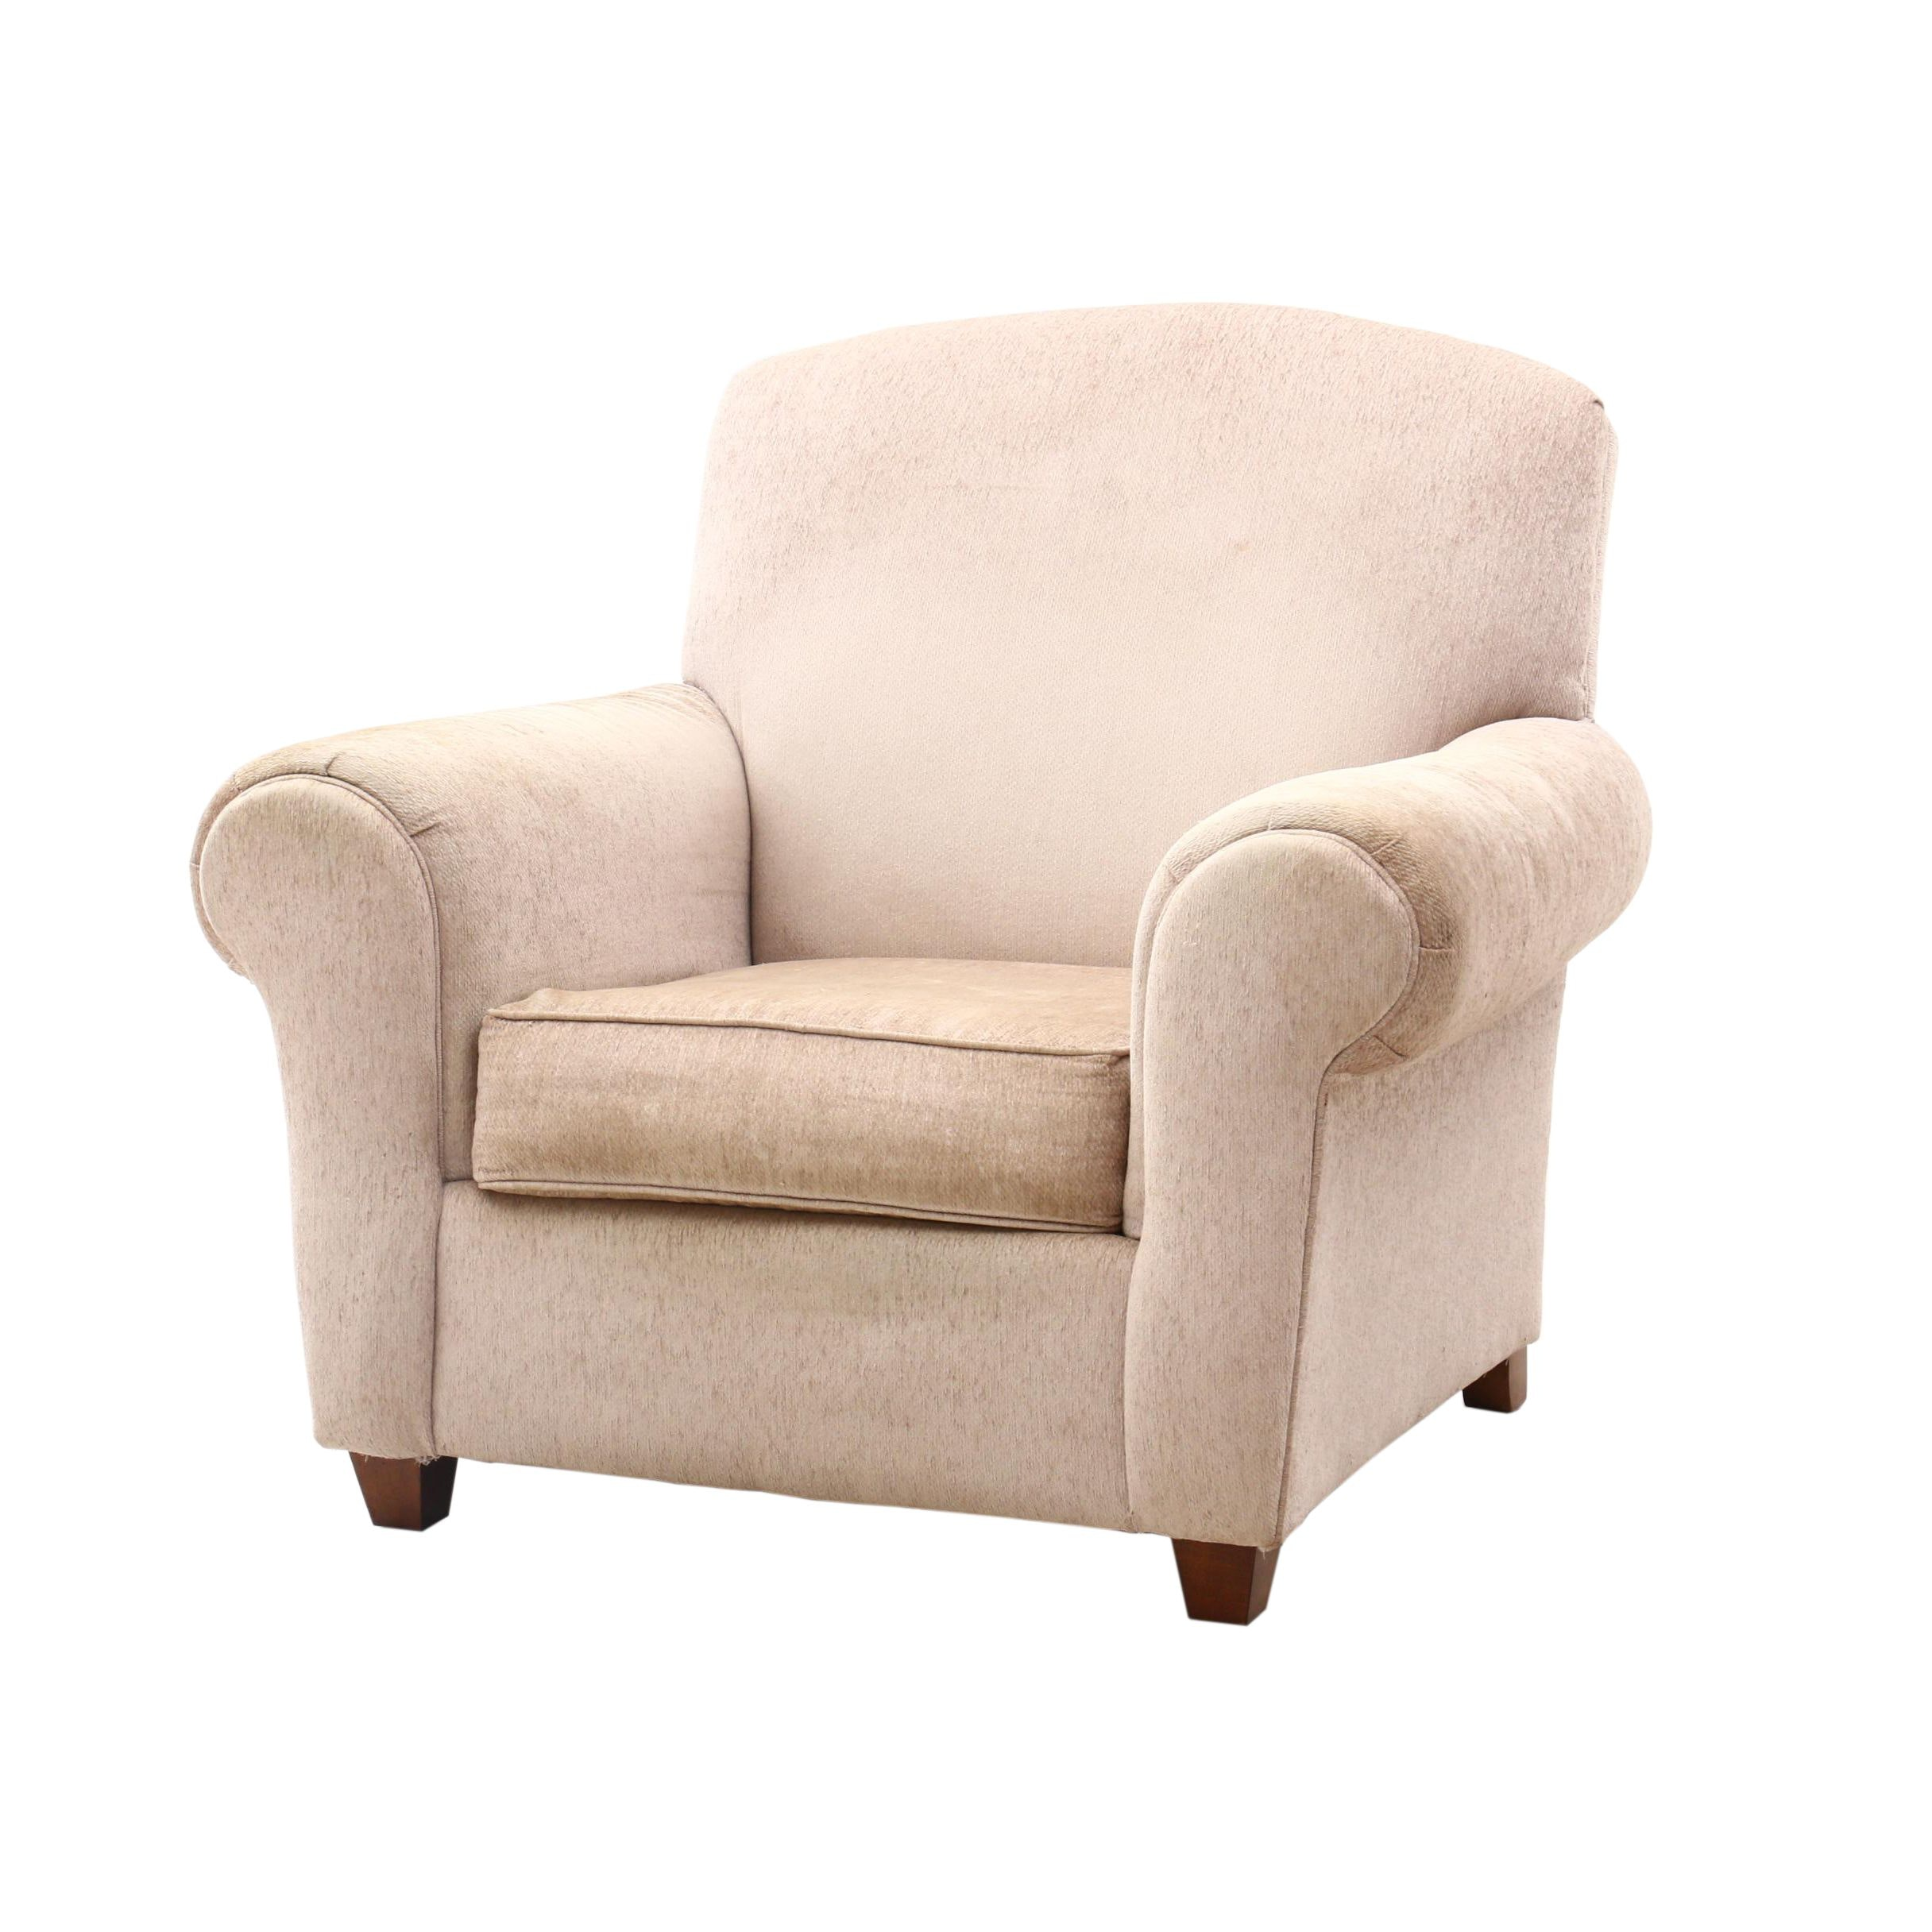 Contemporary Upholstered Arm Chair